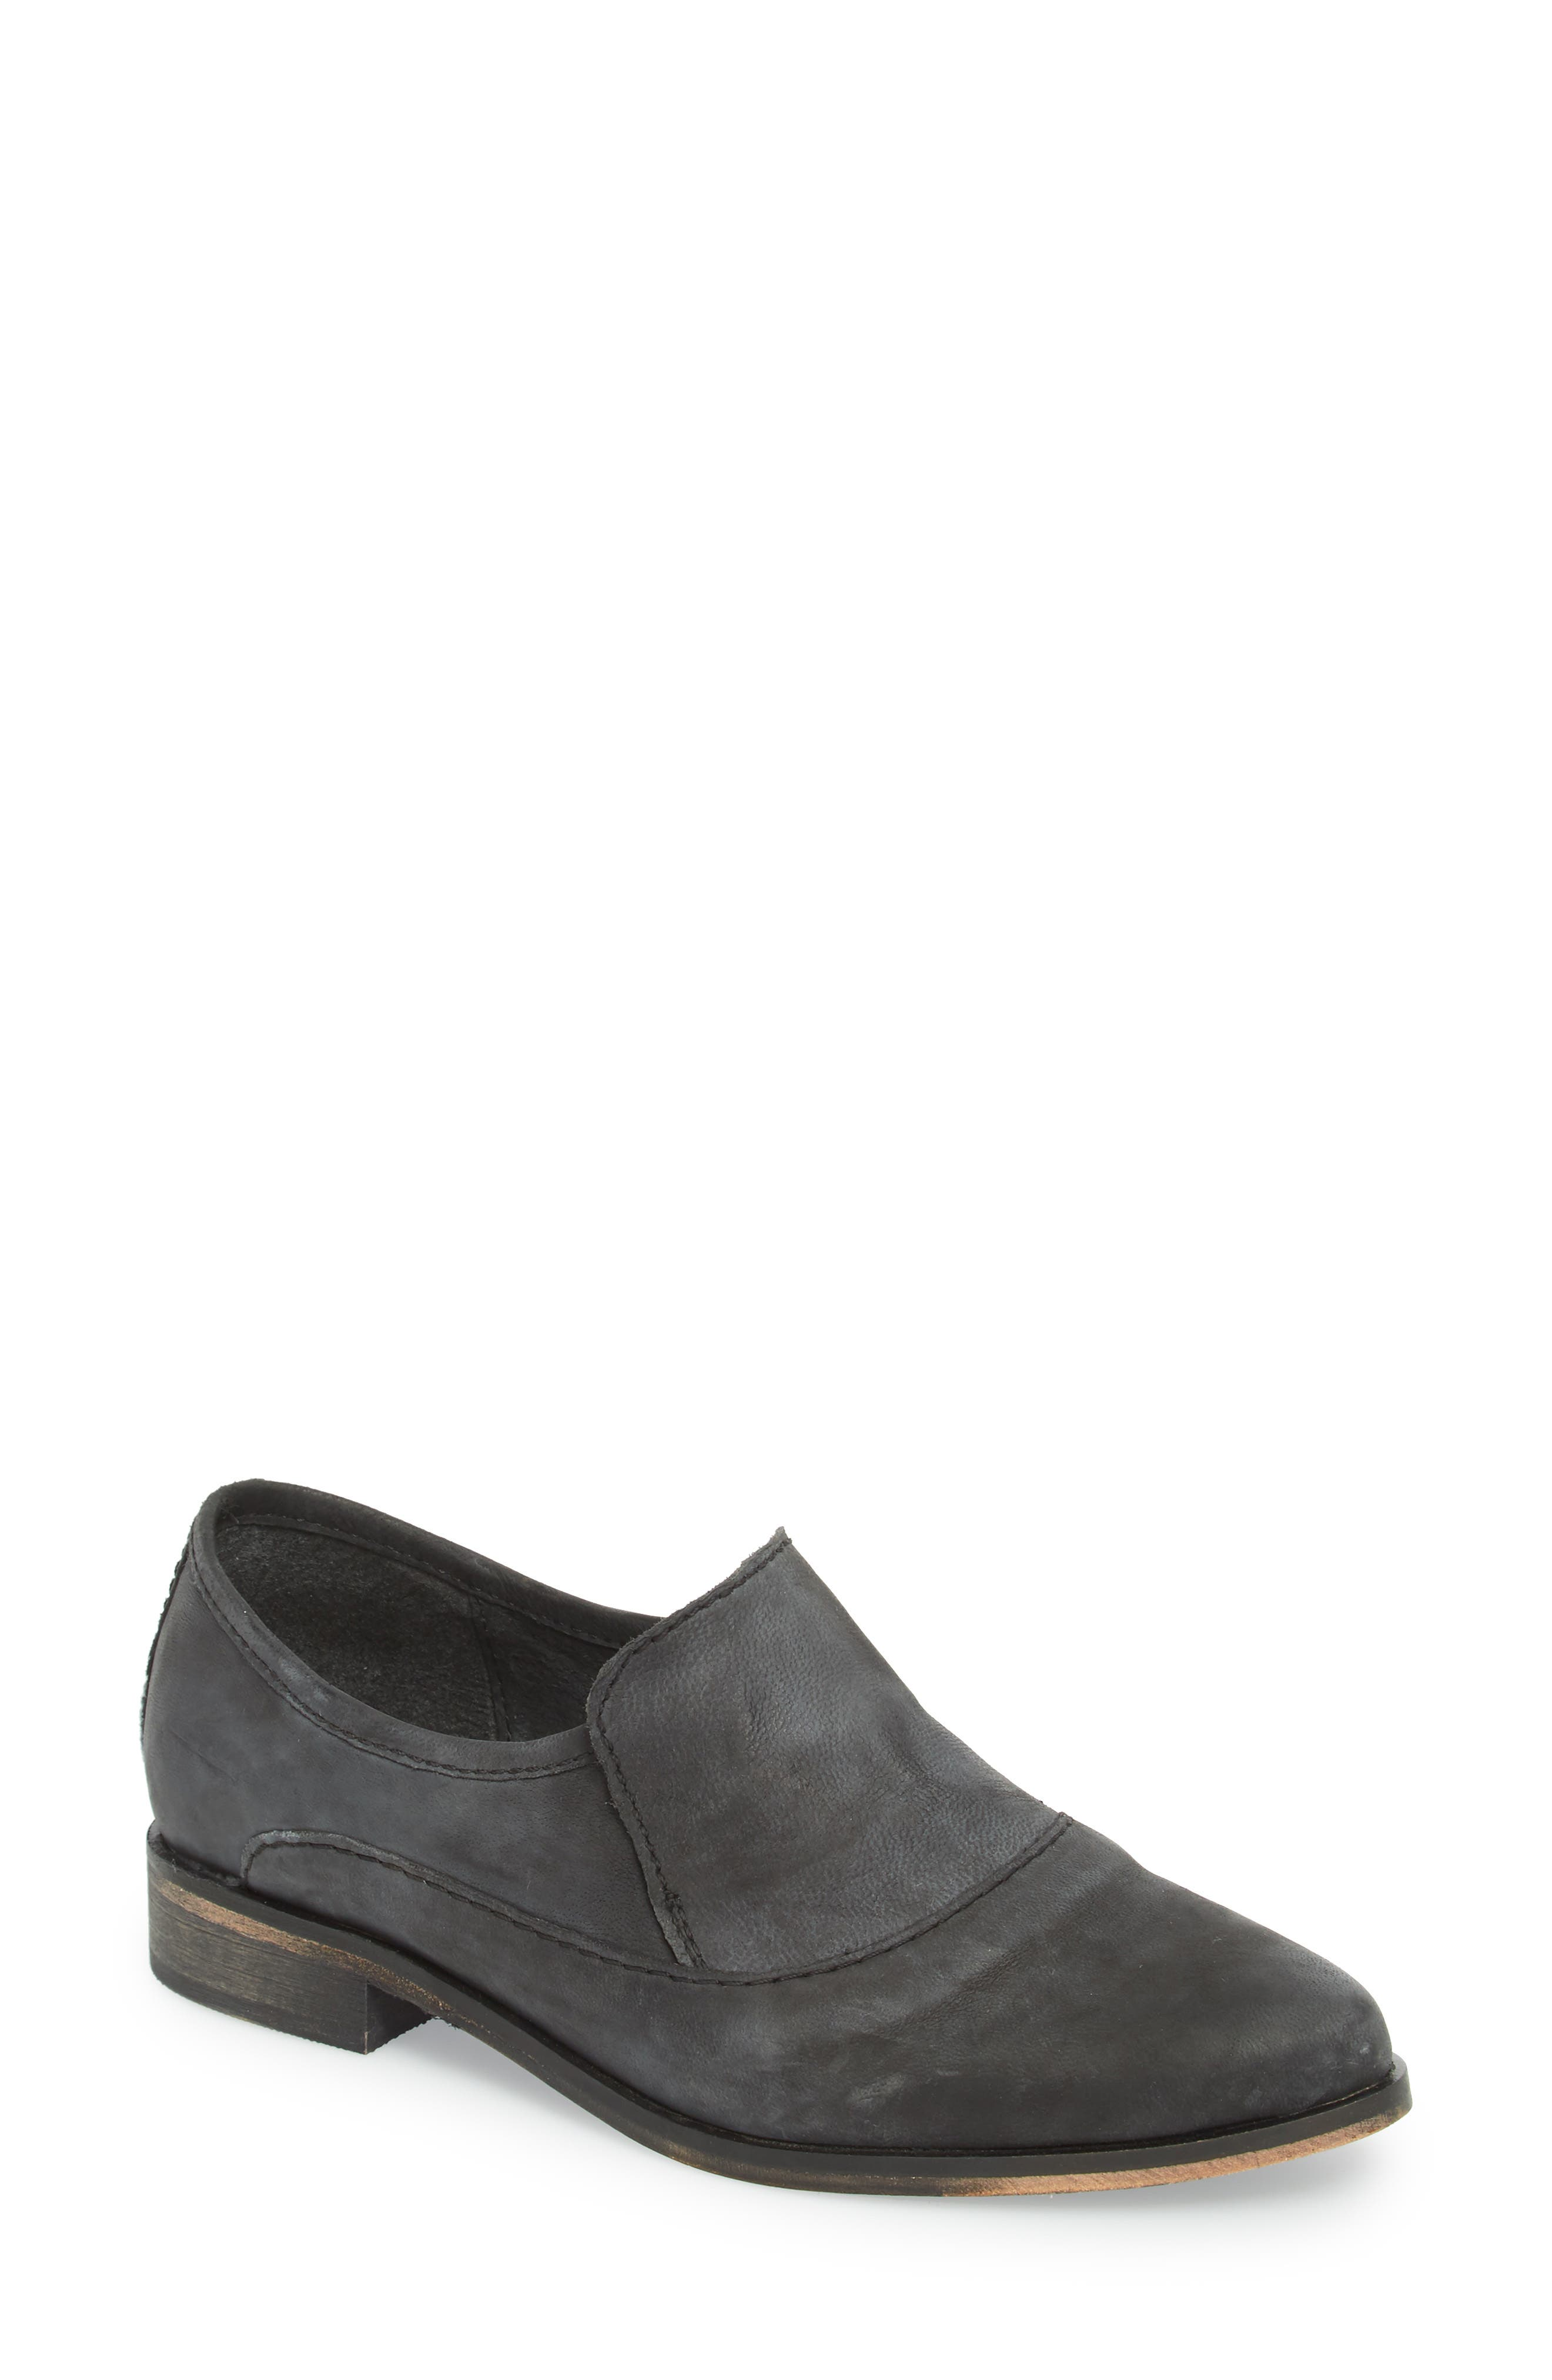 Brady Loafer,                             Main thumbnail 2, color,